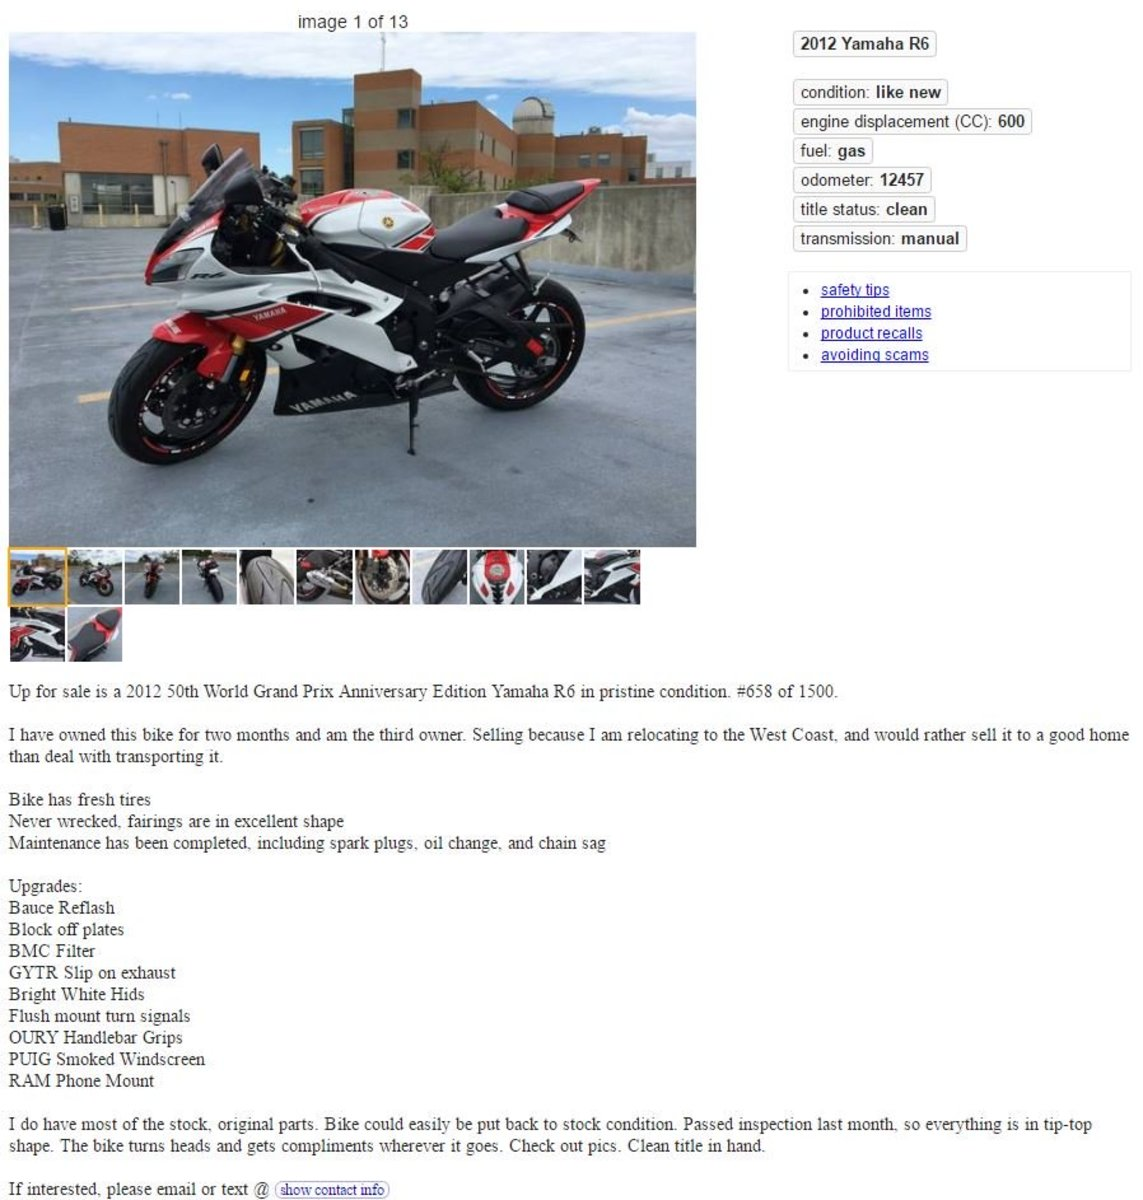 How to Buy a Motorcycle on Craigslist | AxleAddict